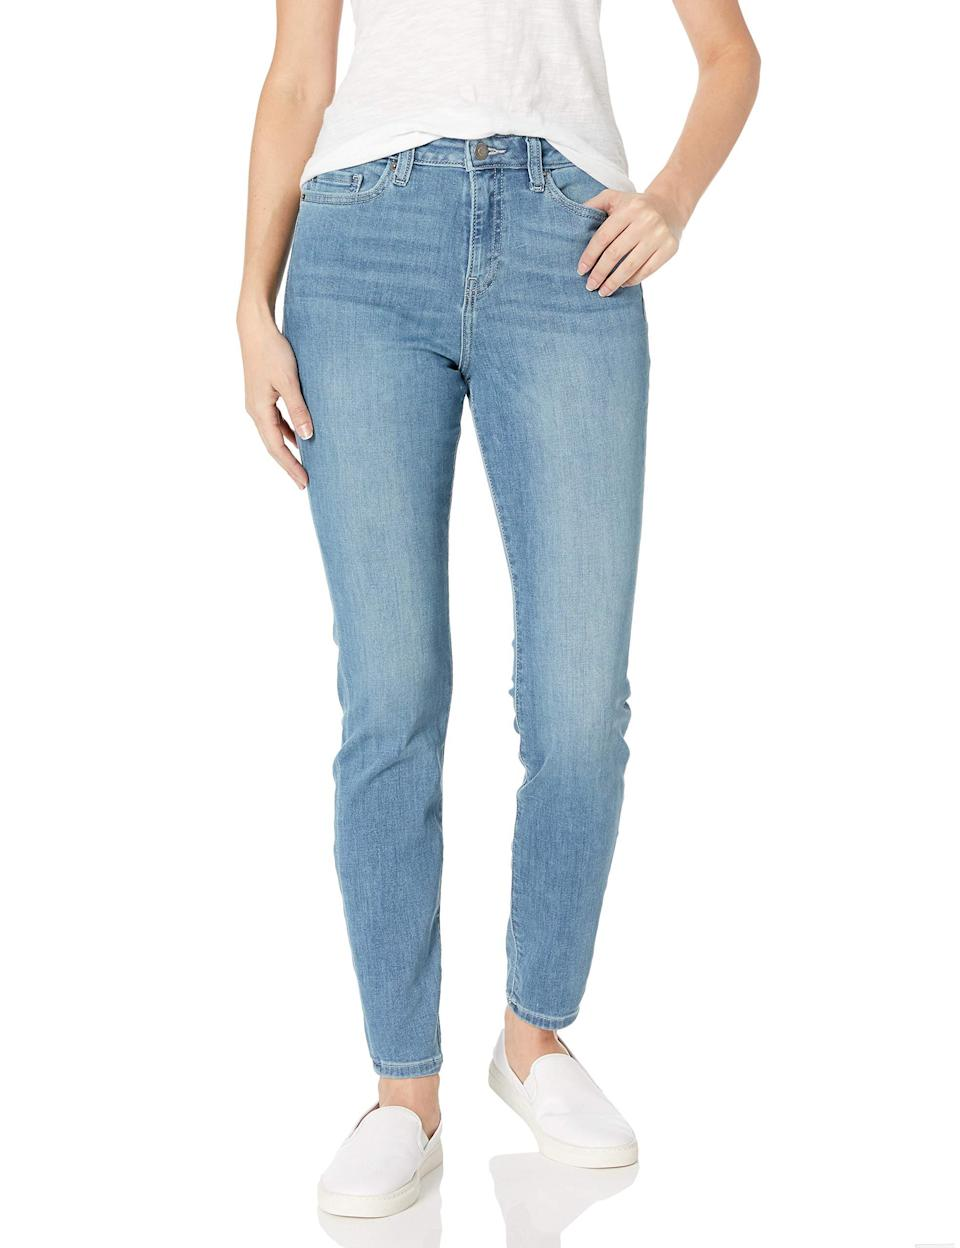 """<h2>Amazon Essentials High-Rise Skinny Jean</h2><br><strong><em>The Best Bargain </em></strong><br><br>If you're in need of new jeans but don't want to pay a hefty price, this casual, comfortable, and classic pair from Amazon Essentials won't cost you more than $35. <br><br><strong>The Hype: </strong>4.3 out of 5 stars; 2,257 reviews on Amazon.com <br><br><strong>What They're Saying</strong>: """"I NEVER write reviews, but I had to give a review of these jeans. They are amazing! I got them yesterday and couldn't wait to wear them today. They are the most comfy pair of jeans I own. I like the high rise because I have 'junk in the trunk' and when I am moving around they don't slide down. I am definitely ordering more pairs! The best part is the bargain price!"""" — Jennifer, Amazon.com reviewer<br><em><br>Shop <a href=""""https://www.amazon.com/Amazon-Essentials-Standard-High-Rise-Regular/dp/B07QSC98TN/ref=sr_1_18_sspa?th=1&psc=1"""" rel=""""nofollow noopener"""" target=""""_blank"""" data-ylk=""""slk:Amazon.com"""" class=""""link rapid-noclick-resp""""><strong>Amazon.com</strong></a></em><br><br><strong>Amazon Essentials</strong> High-Rise Skinny Jean, $, available at <a href=""""https://www.amazon.com/Amazon-Essentials-Standard-High-Rise-Regular/dp/B07QQ2YN83/ref=sr_1_18_sspa"""" rel=""""nofollow noopener"""" target=""""_blank"""" data-ylk=""""slk:Amazon"""" class=""""link rapid-noclick-resp"""">Amazon</a>"""